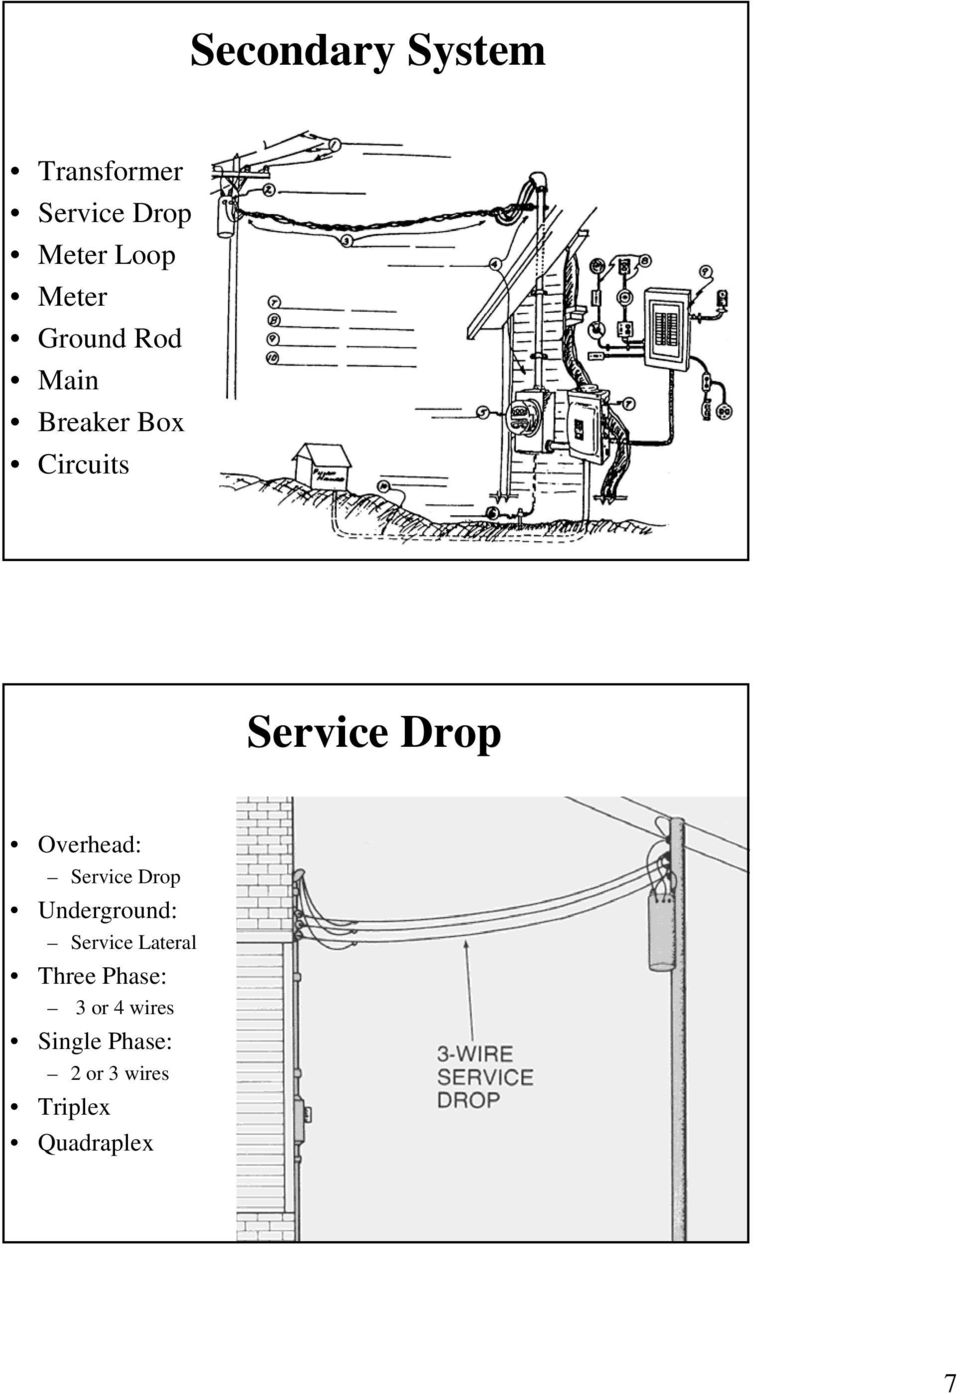 Services Three Phase Service Pdf Meter Wiring Diagram Overhead Drop Underground Lateral